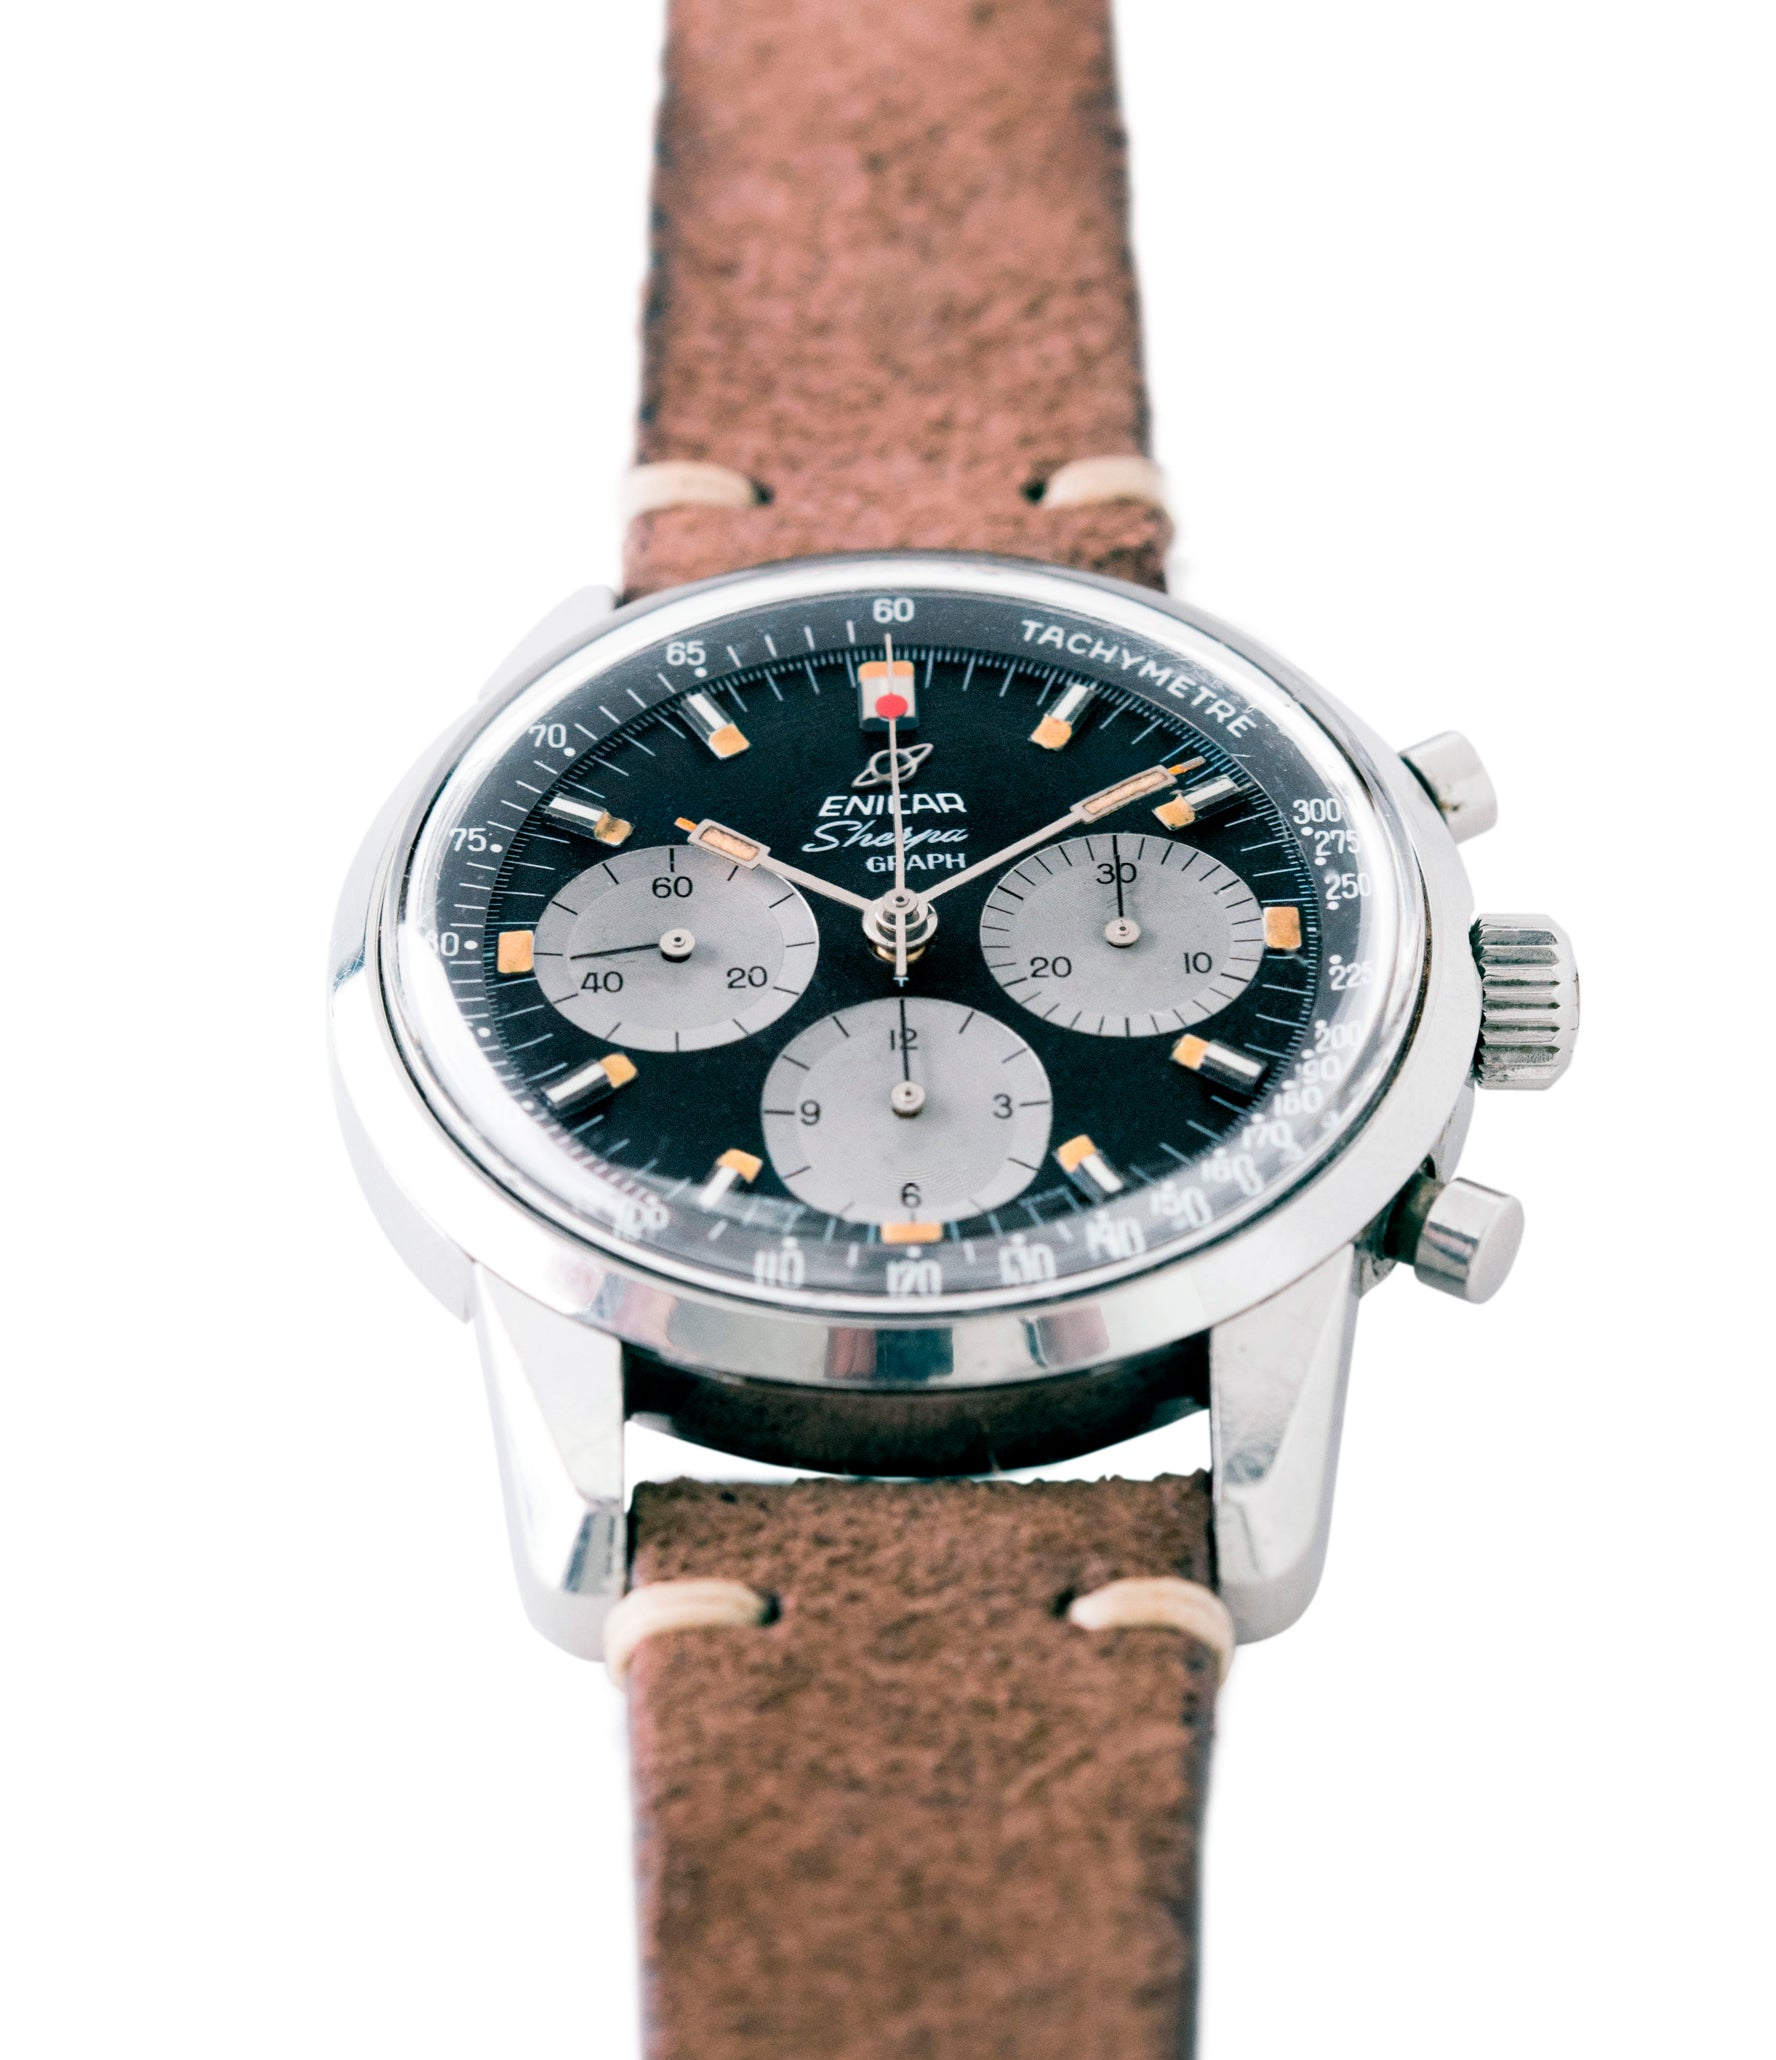 for sale vintage Enicar Sherpa Graph 300 MKIII Jim Clark steel chronograph watch at A Collected Man London UK specialist of rare watches